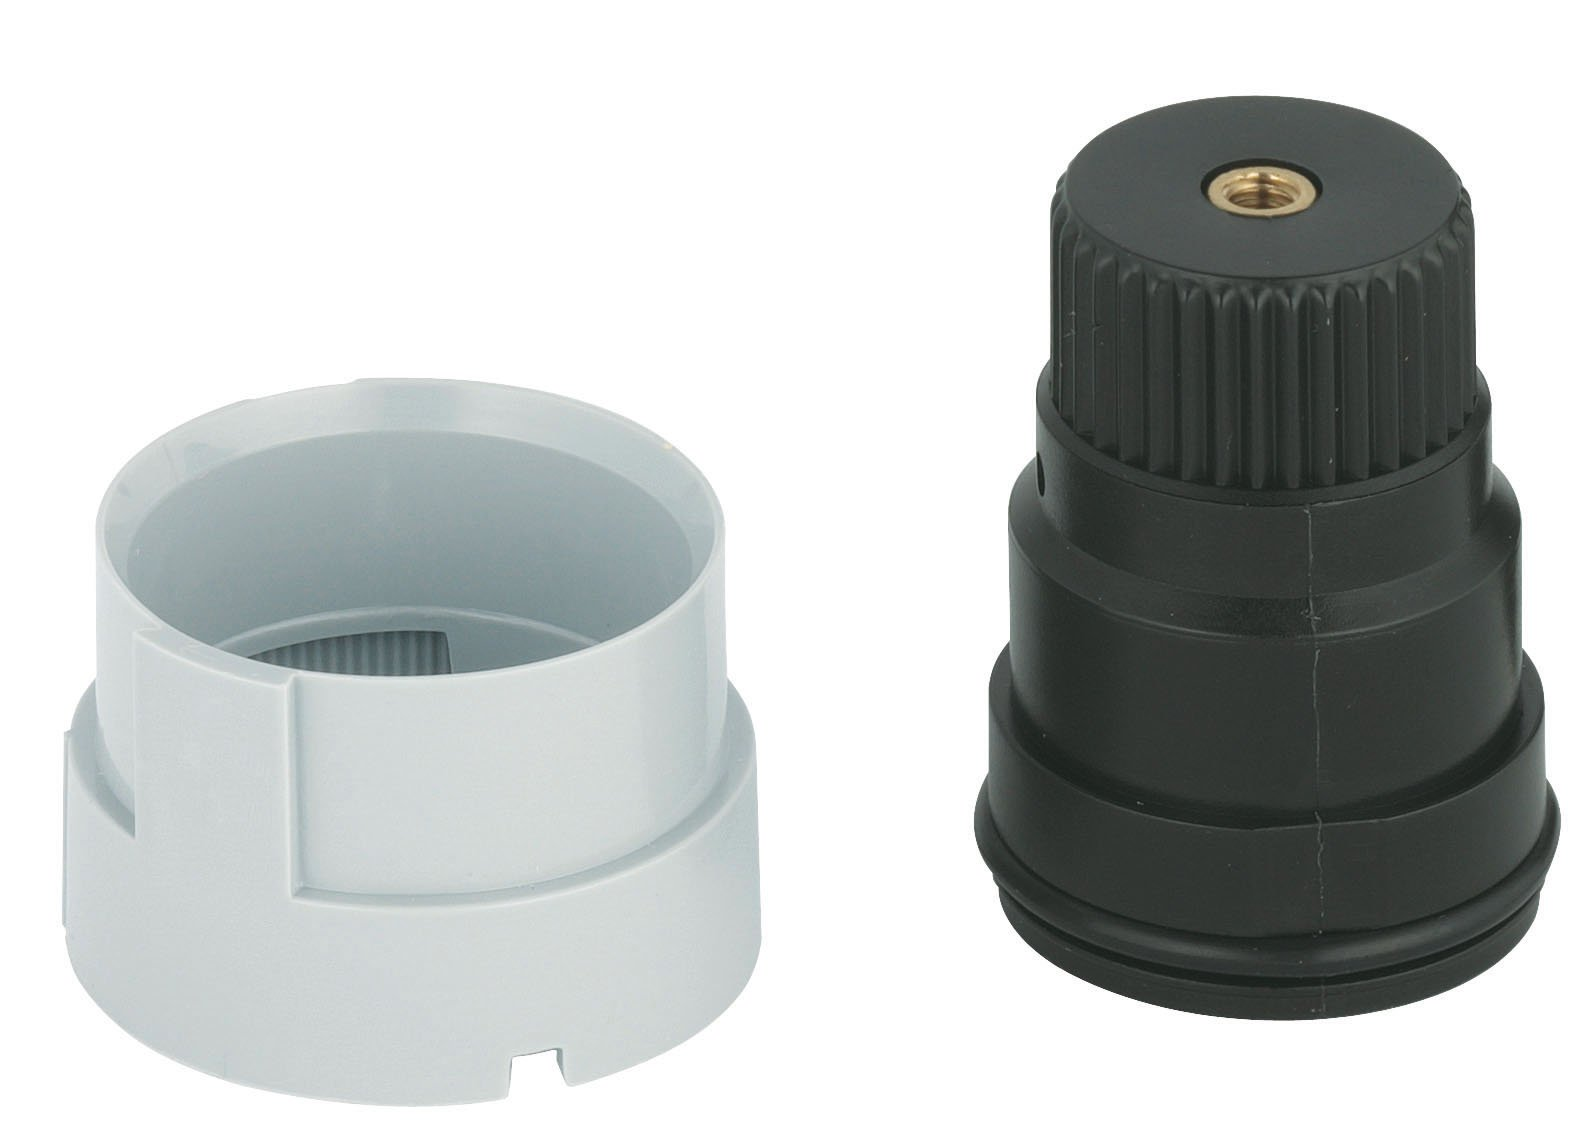 Grohe 47 167 000 Stop Ring with Adjustable Nut